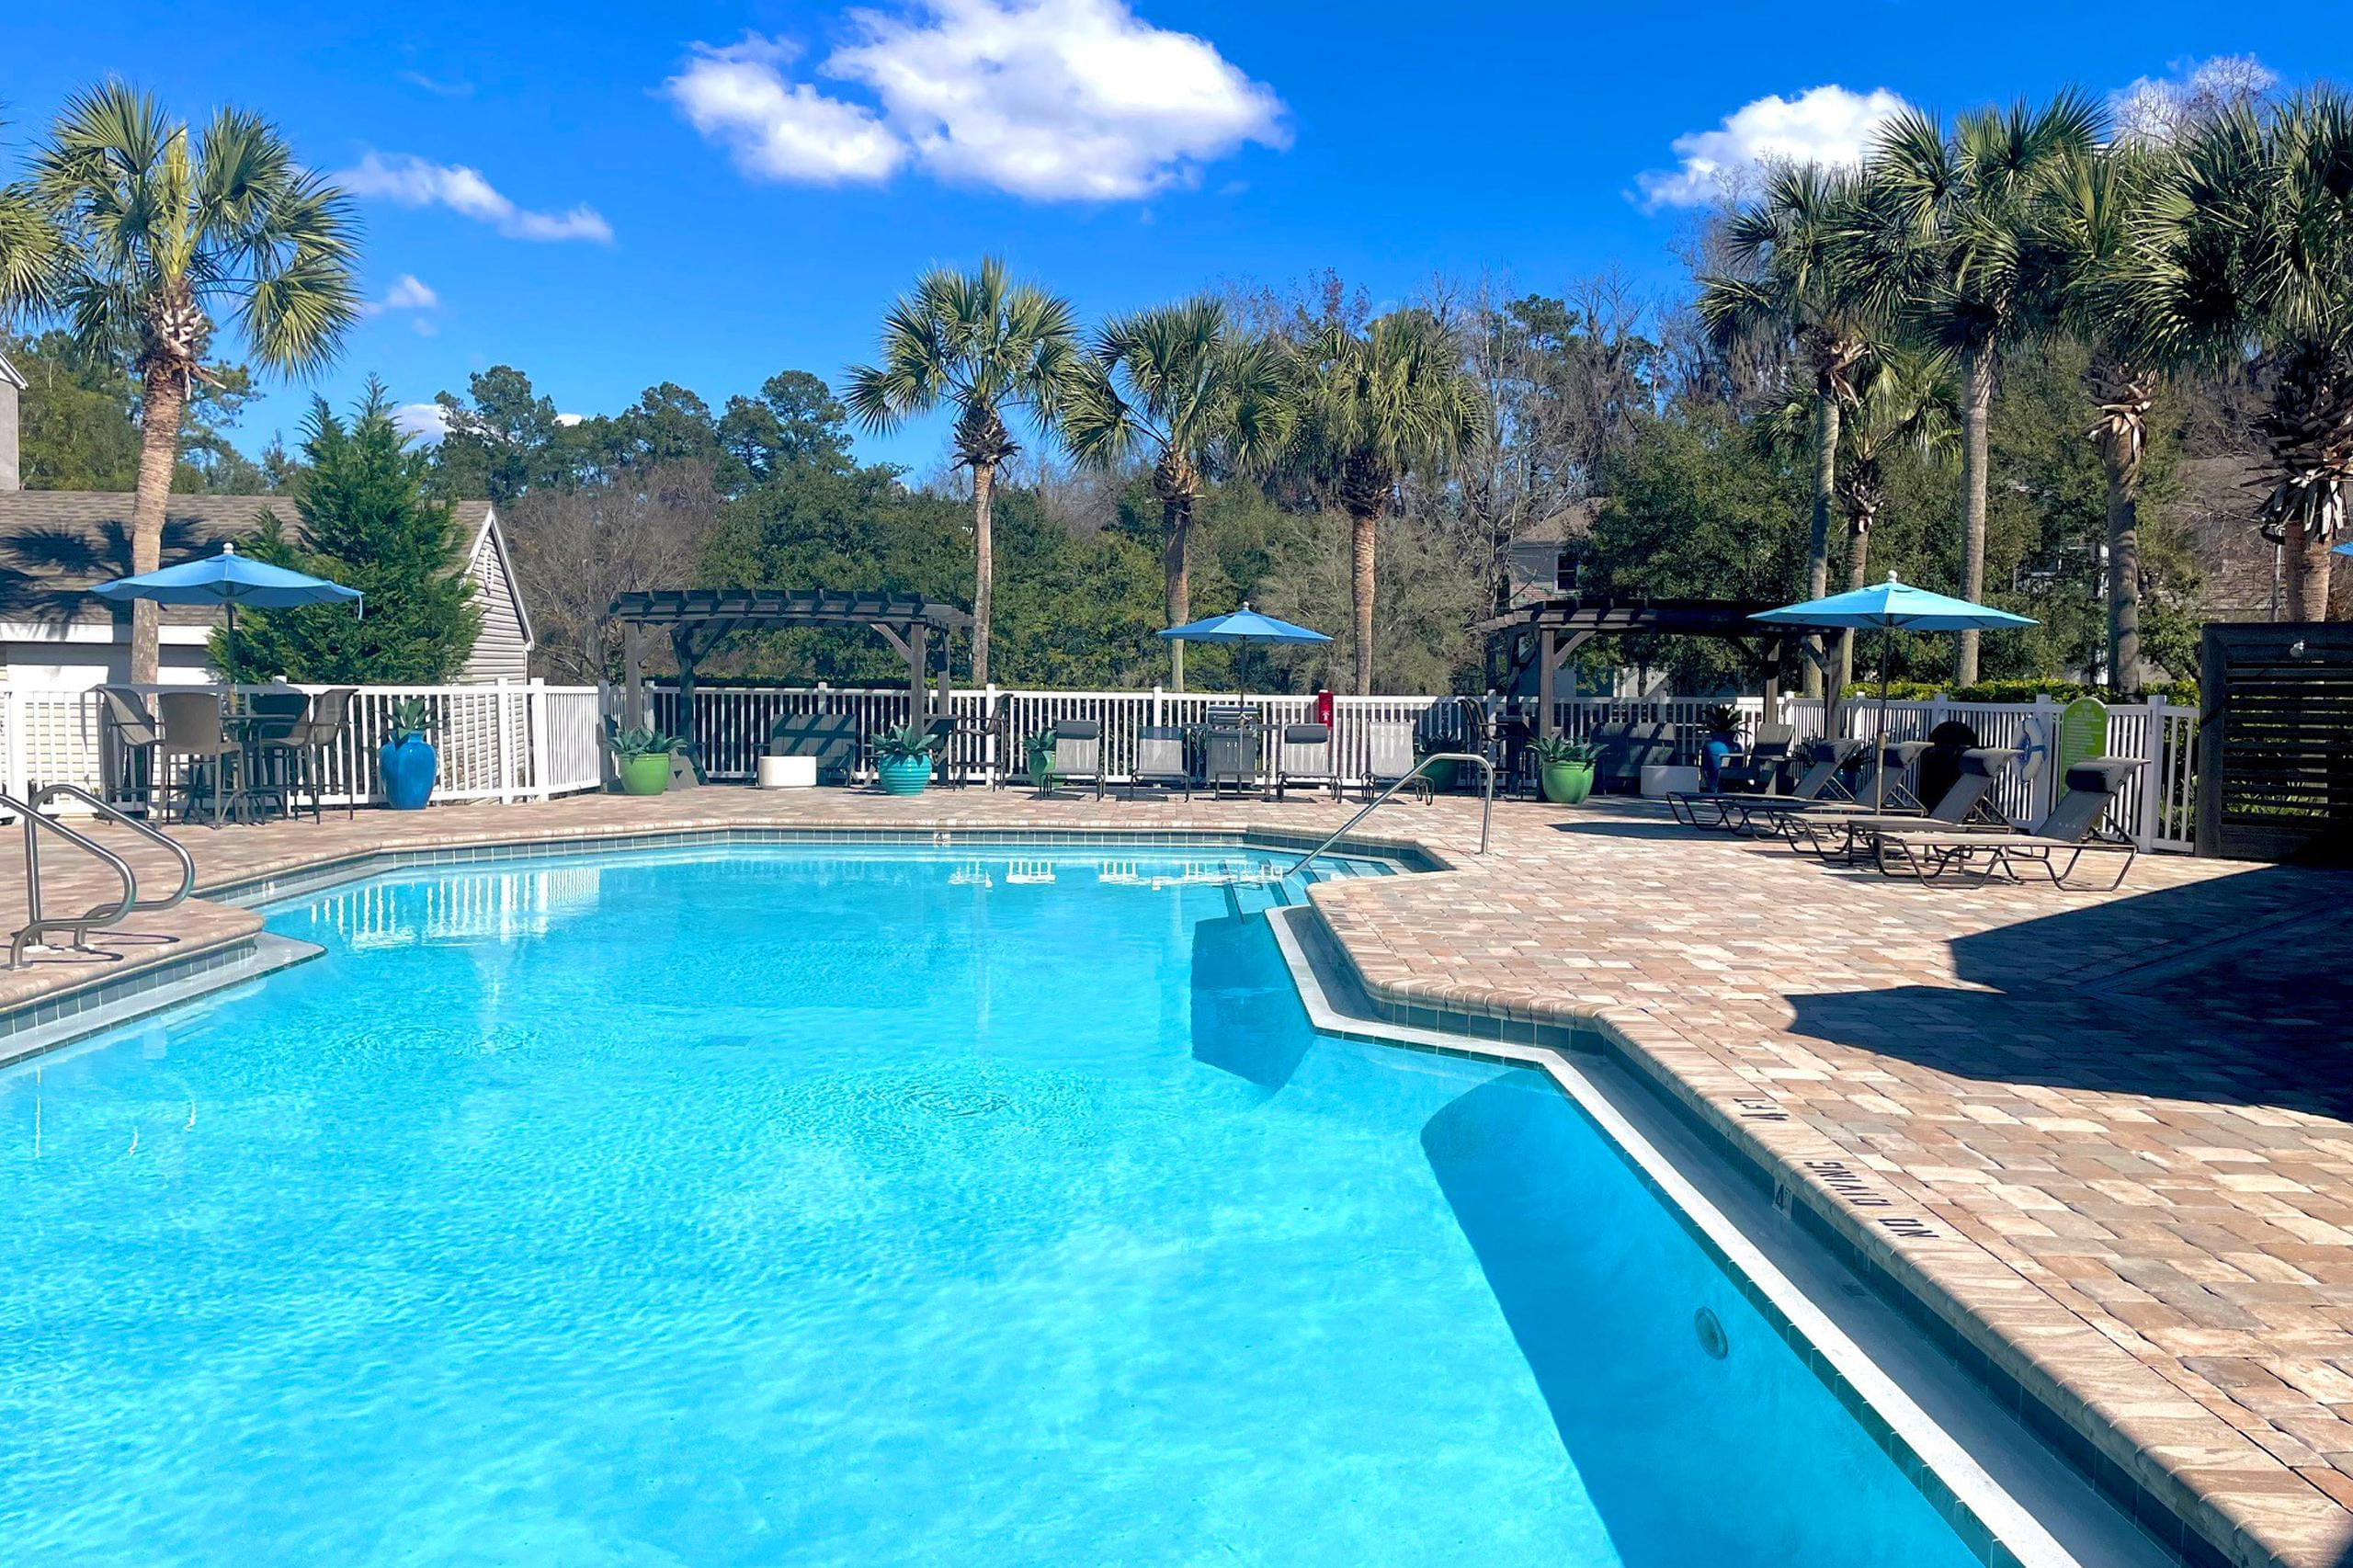 Apartments in Tallahassee | Apartment Rentals Tallahassee FL